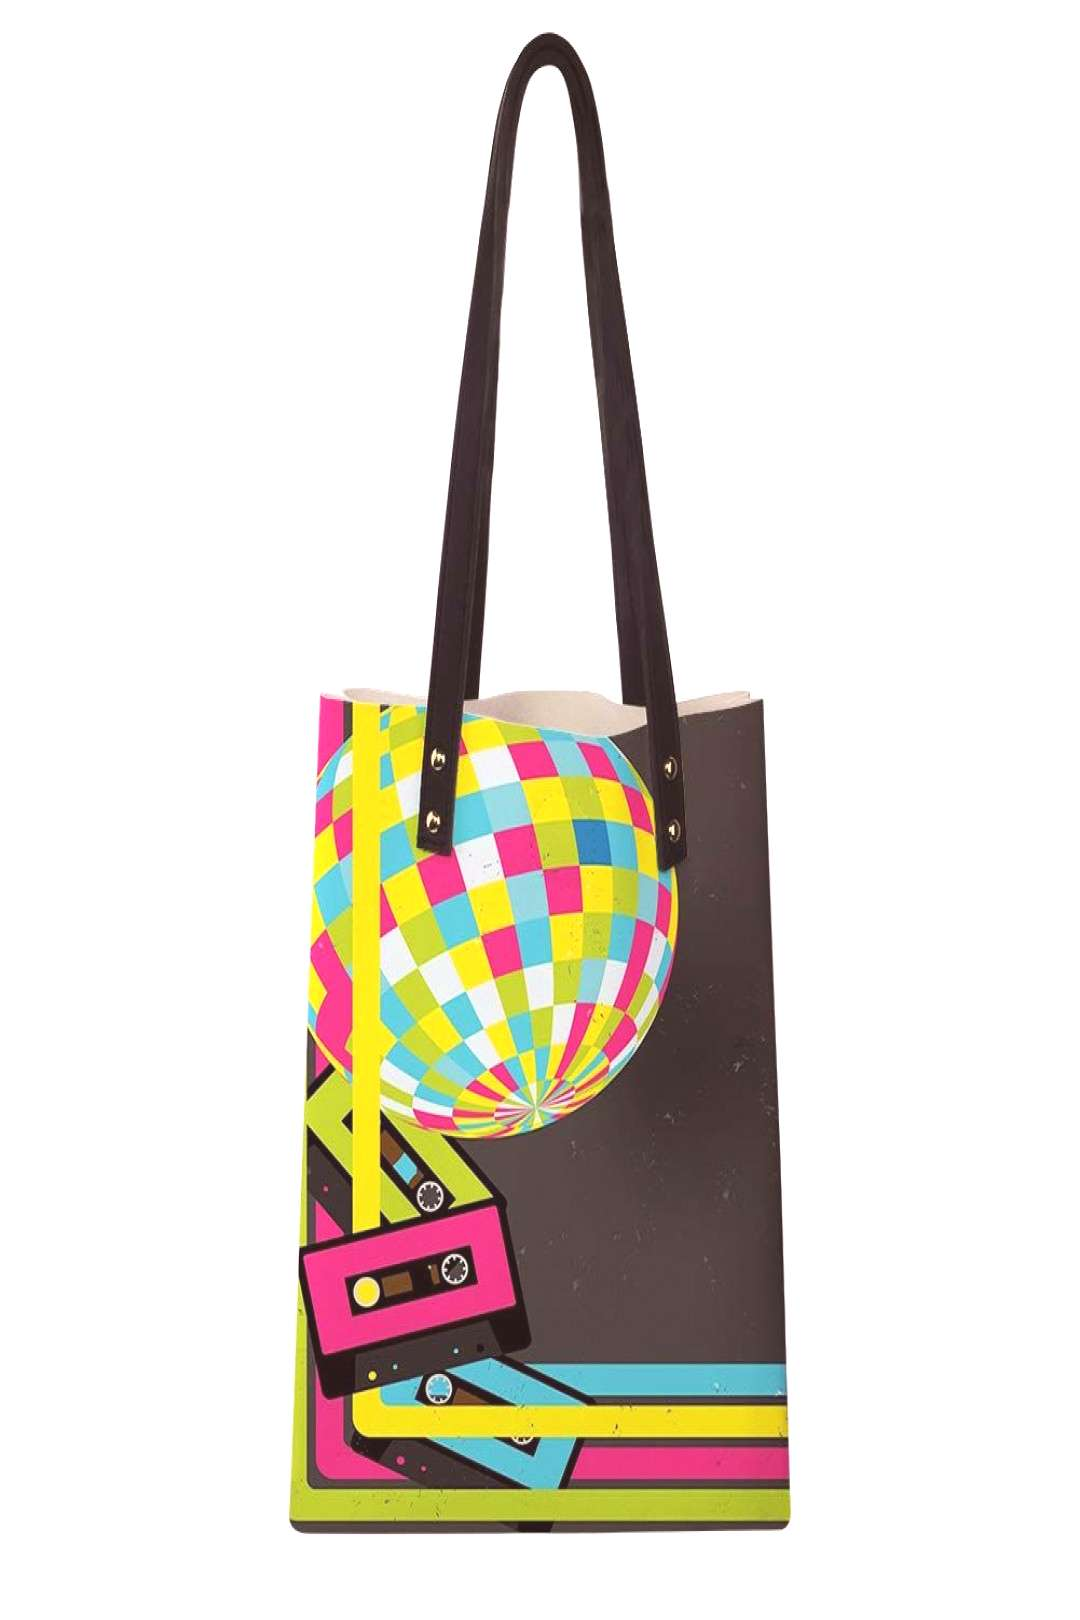 Women's Soft PU leather Tote Shoulder Bag,Retro Party Theme Disco Ball 80s Style Audio Cassette Tap